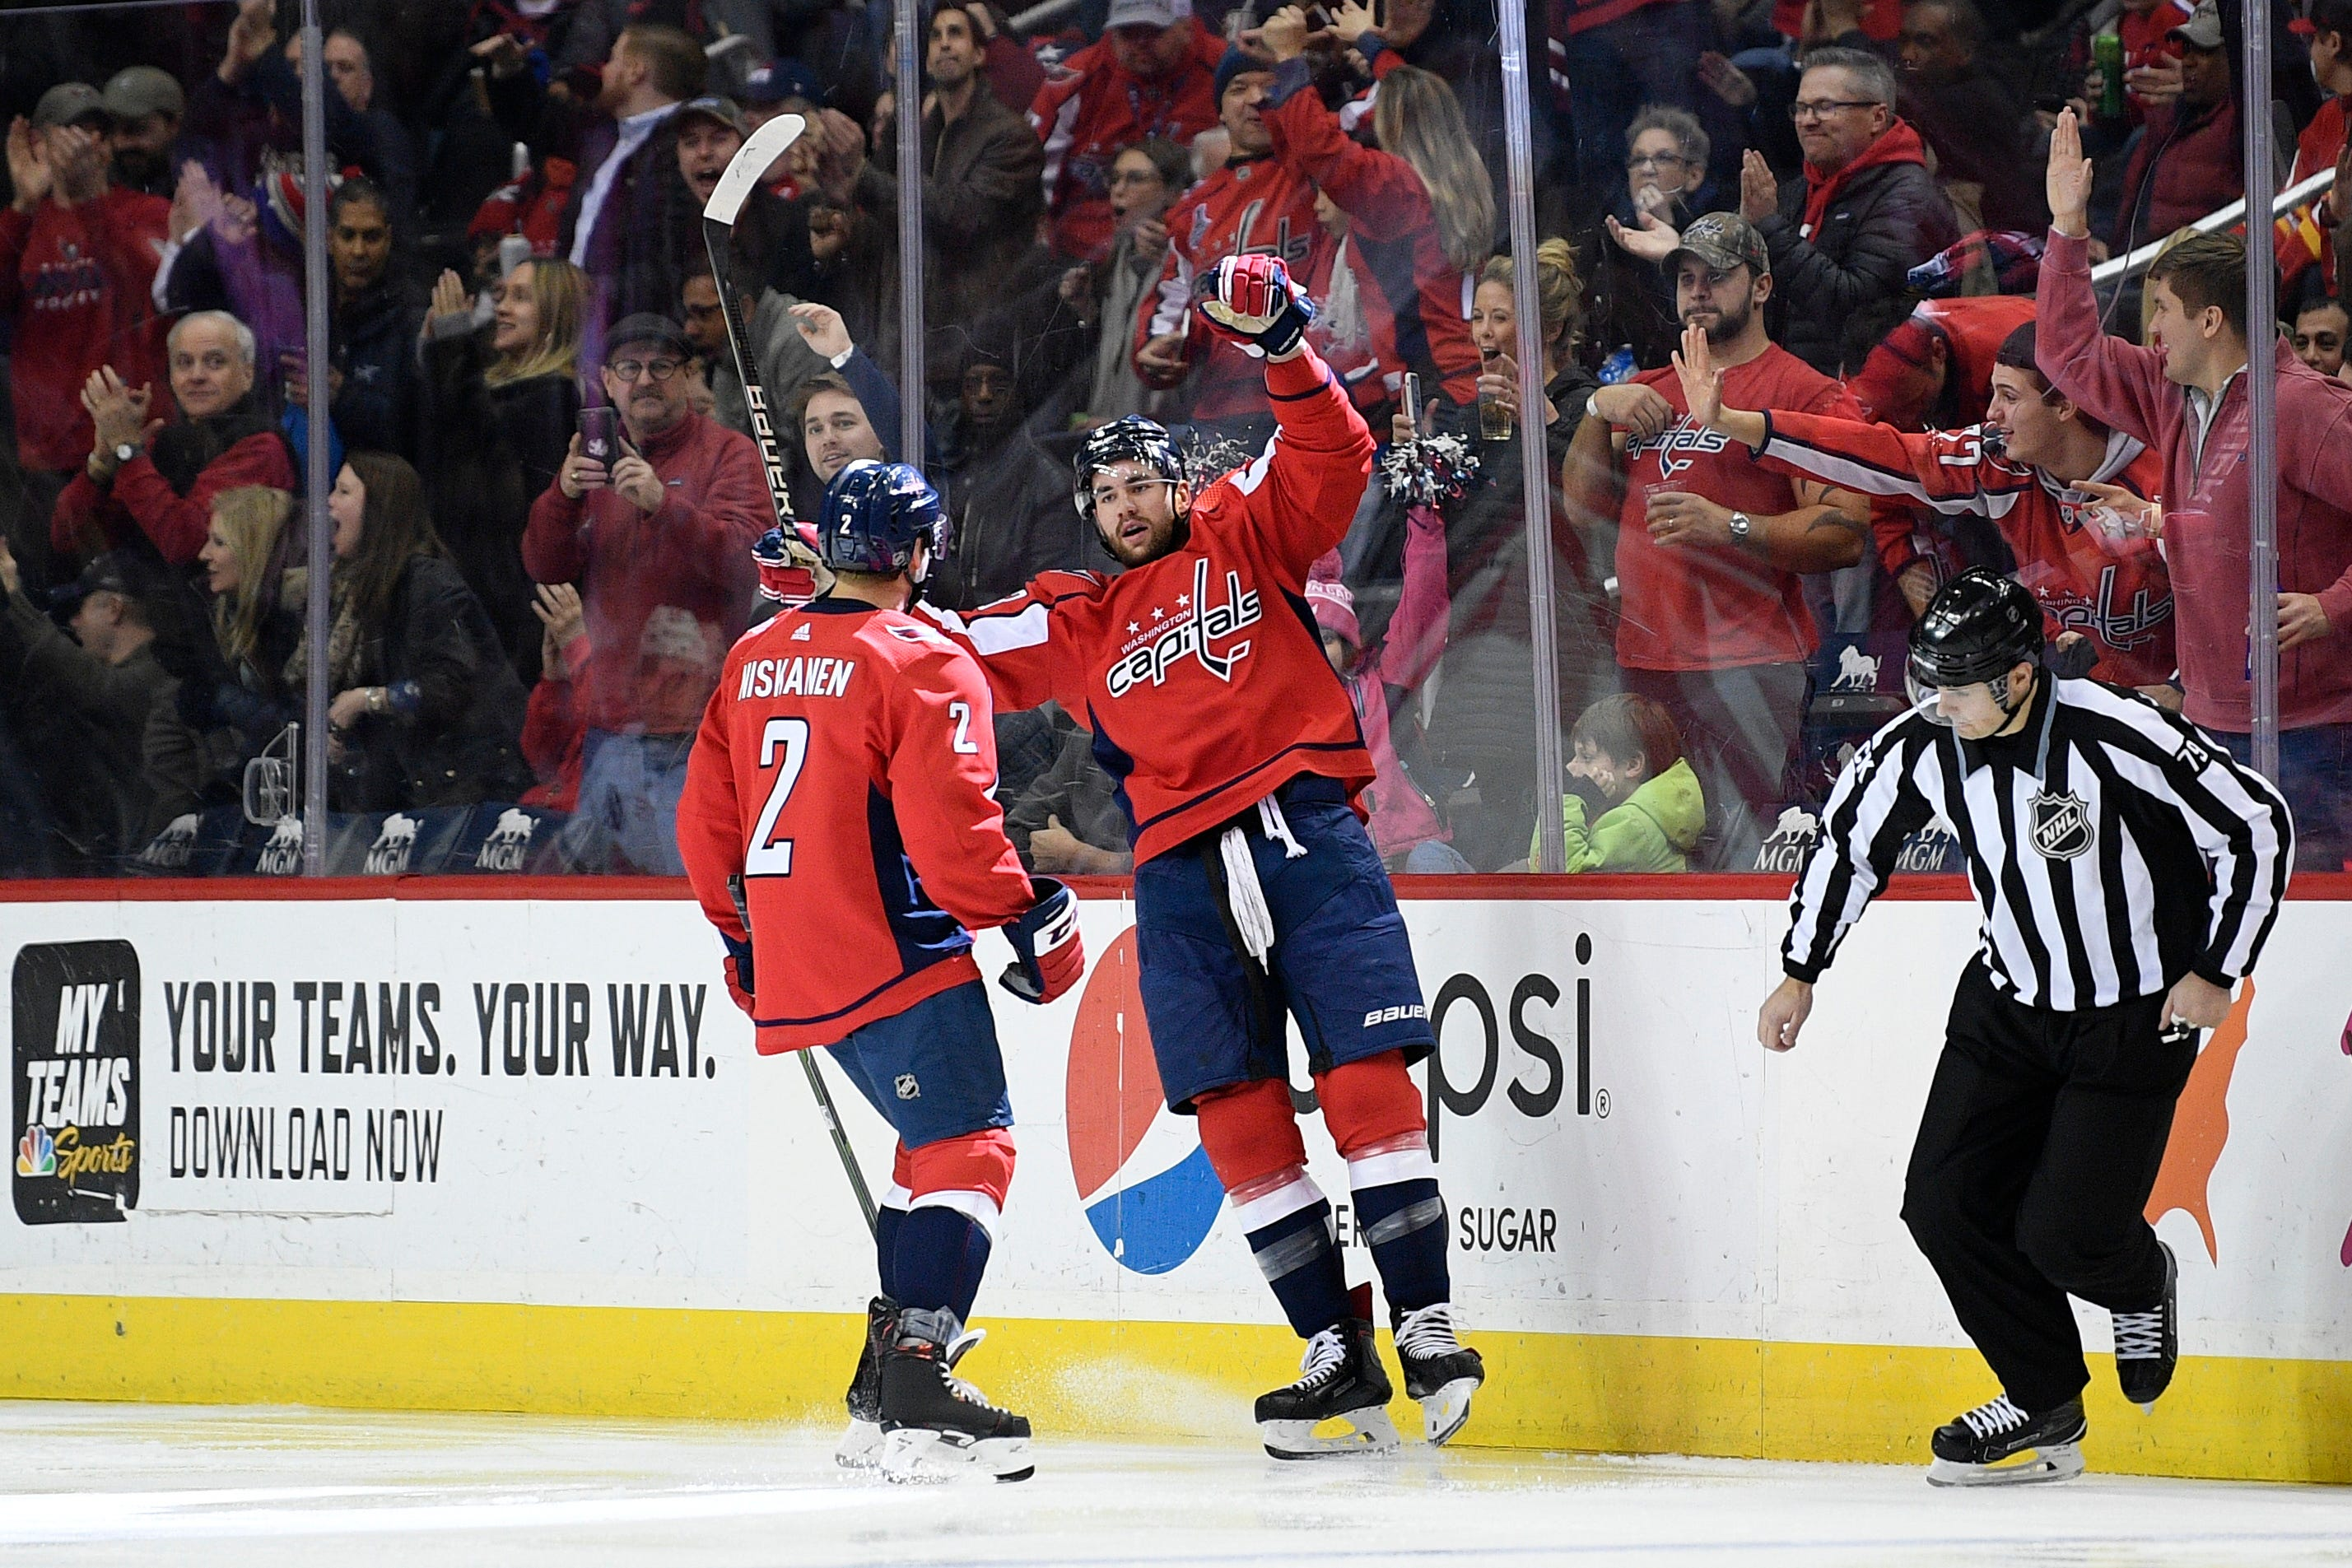 Capitals beat Flames 4-3 without Ovechkin to end 7-game skid